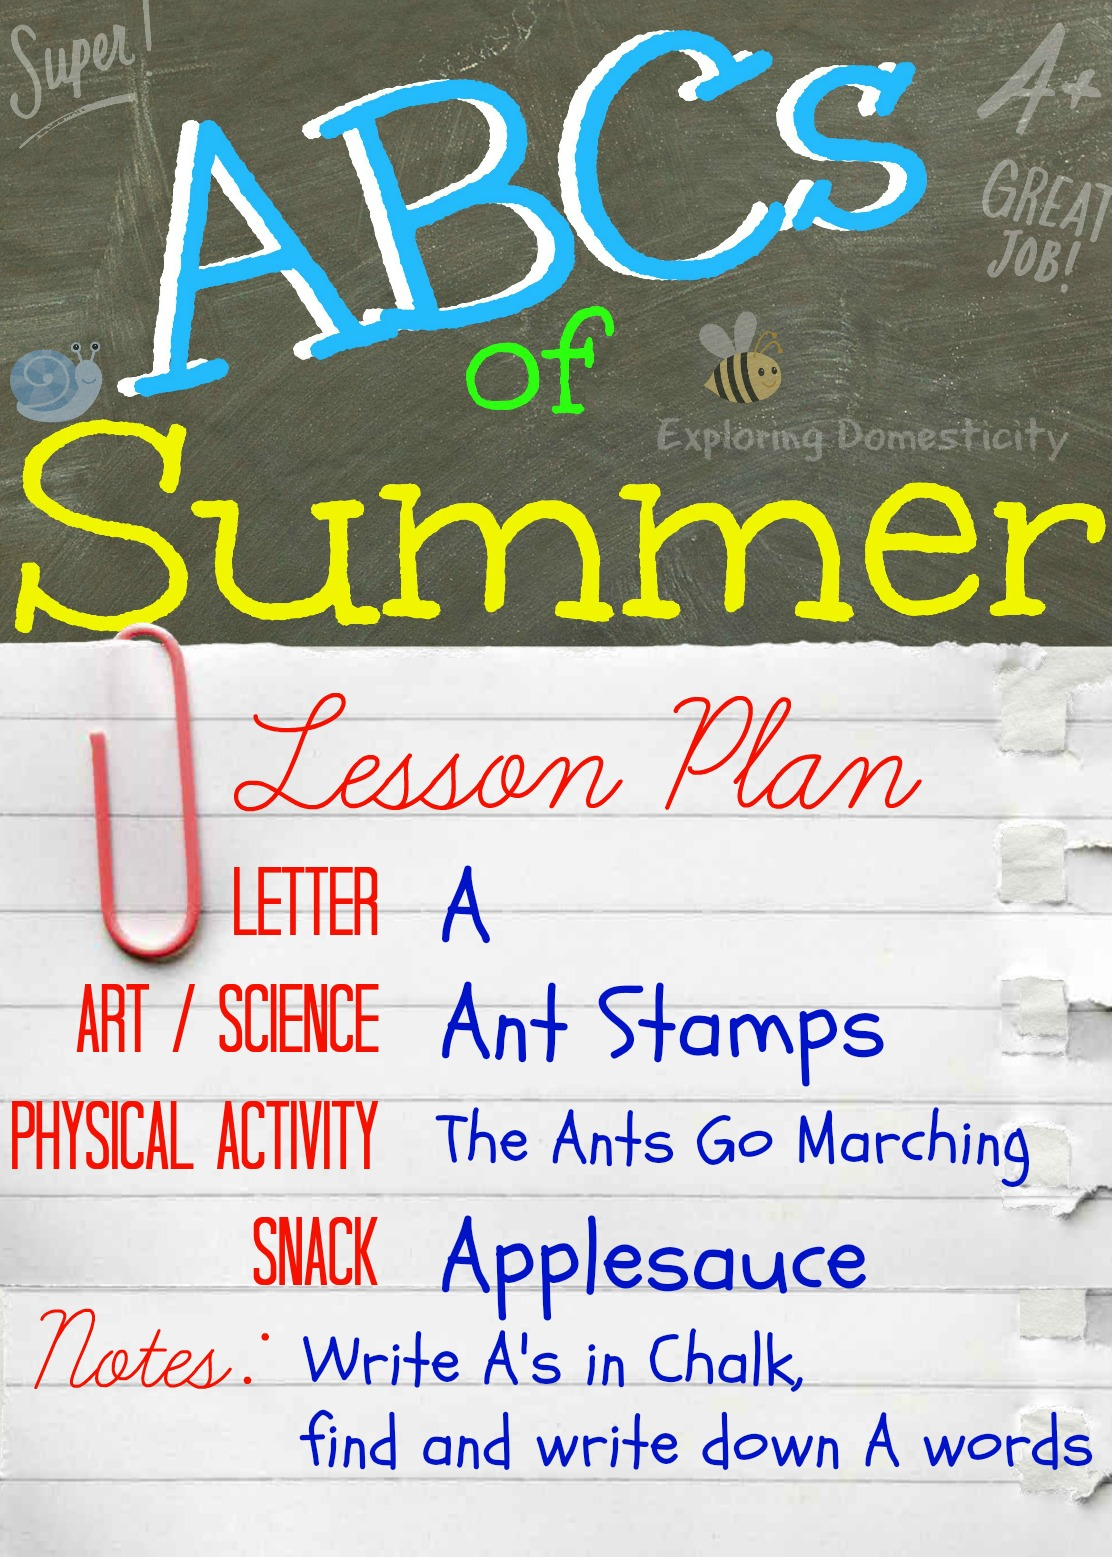 Abcs Of Summer Summer Activities For Preschoolers Letter A Exploring Domesticity